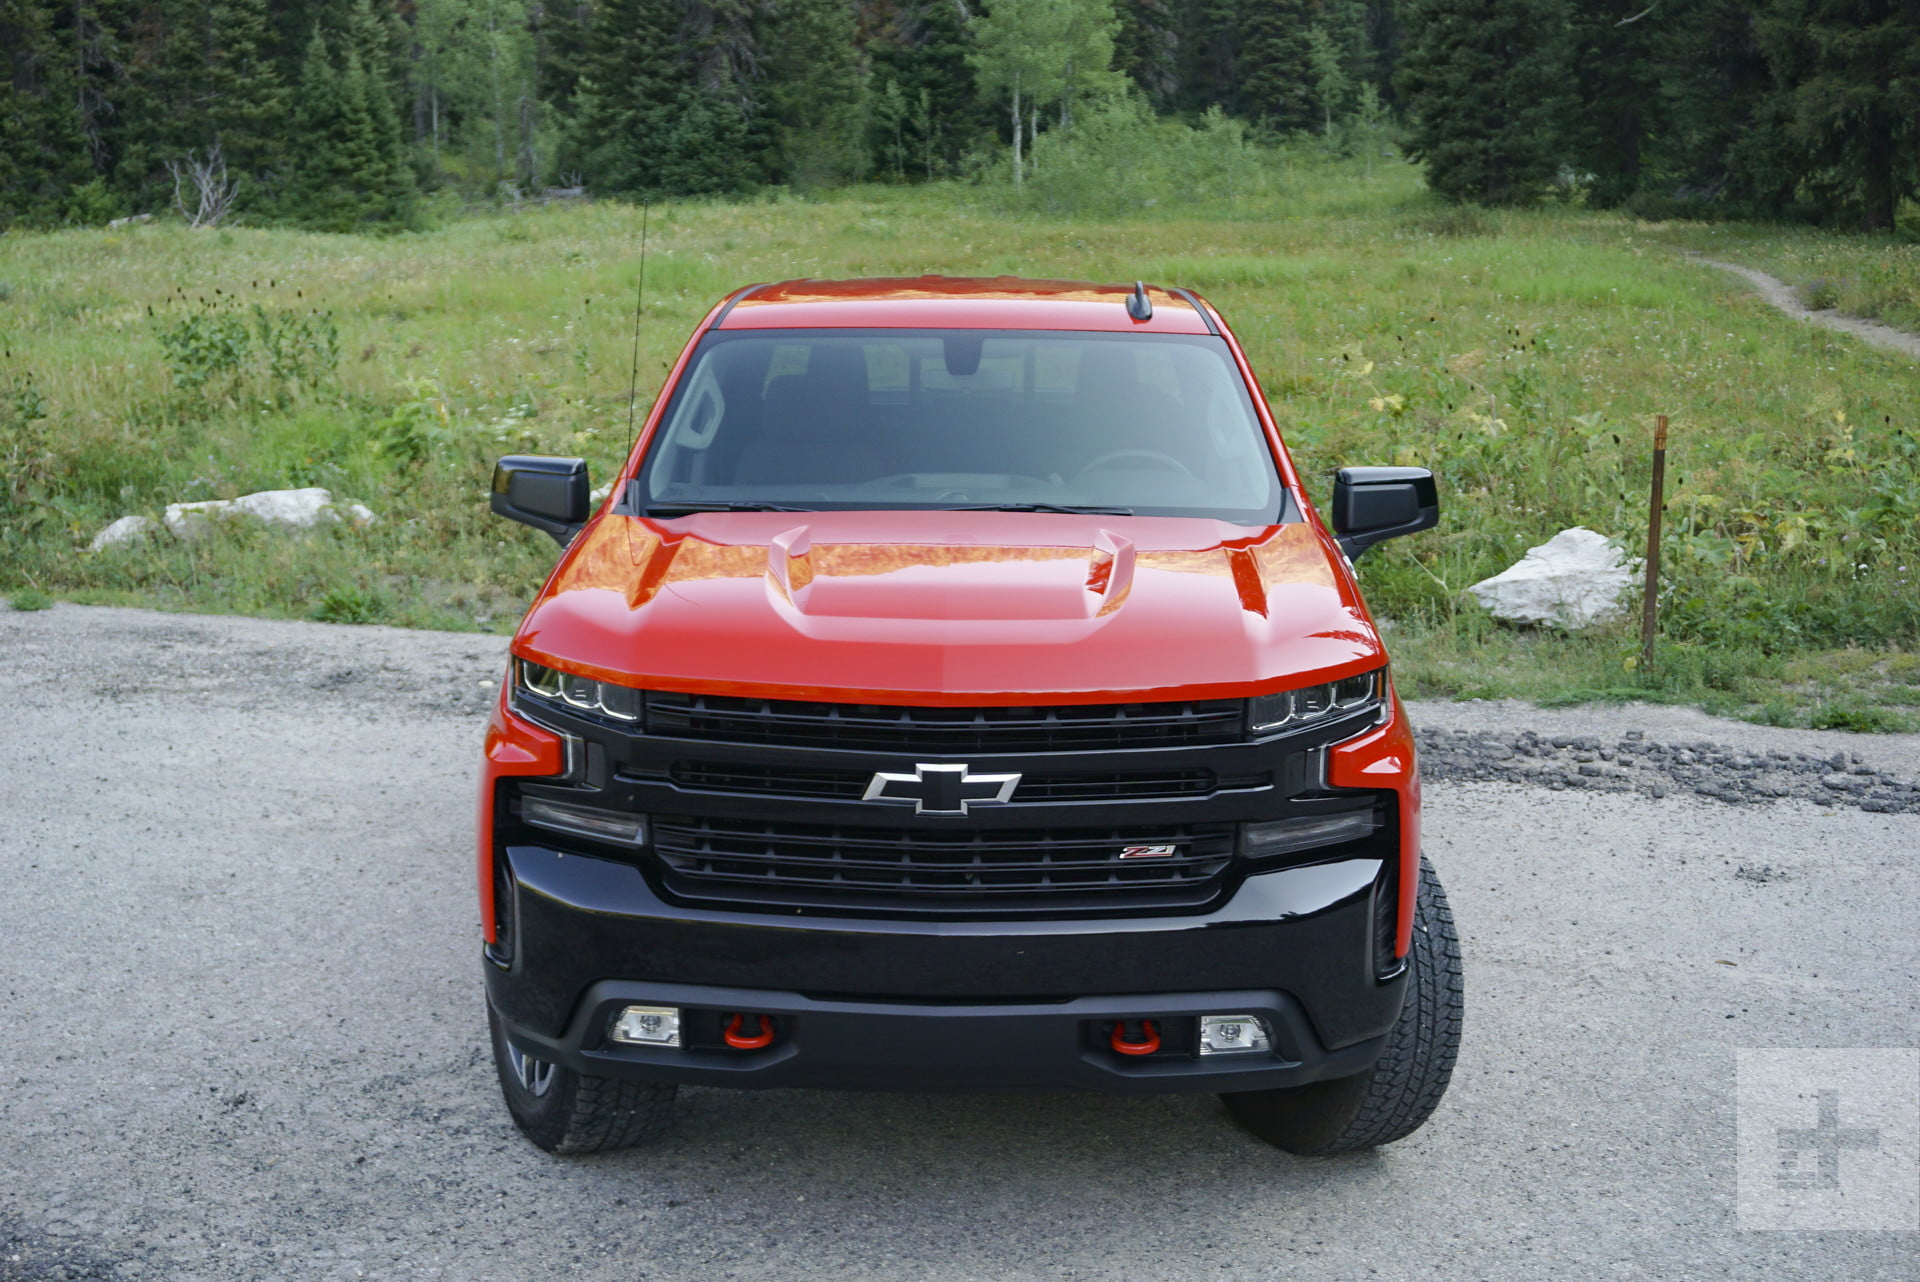 2019 Chevrolet Silverado Full Line First Drive Digital Trends How To Replace Power Steering Hose On Chevy Review